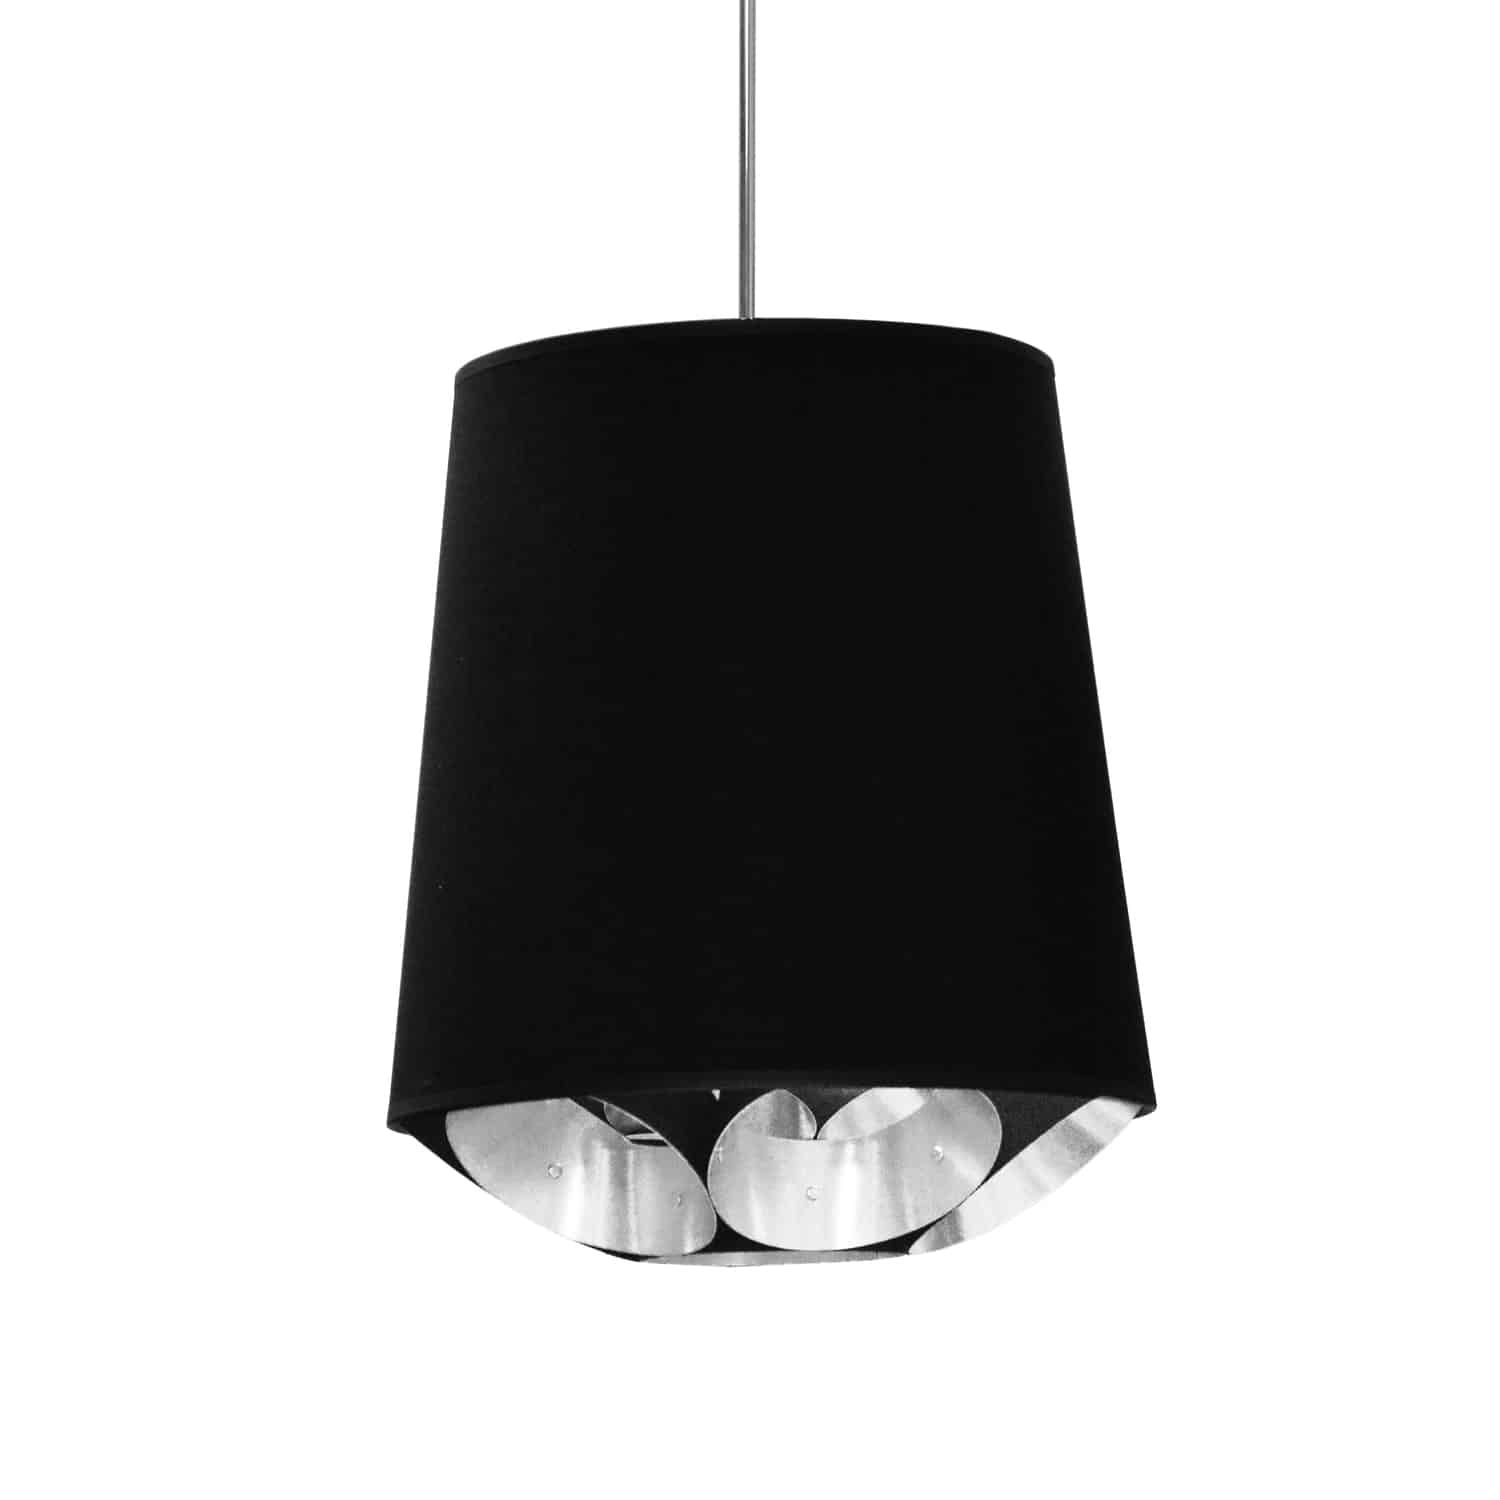 1 Light Hadleigh Pendant Black on Silver Small Polished Chrome